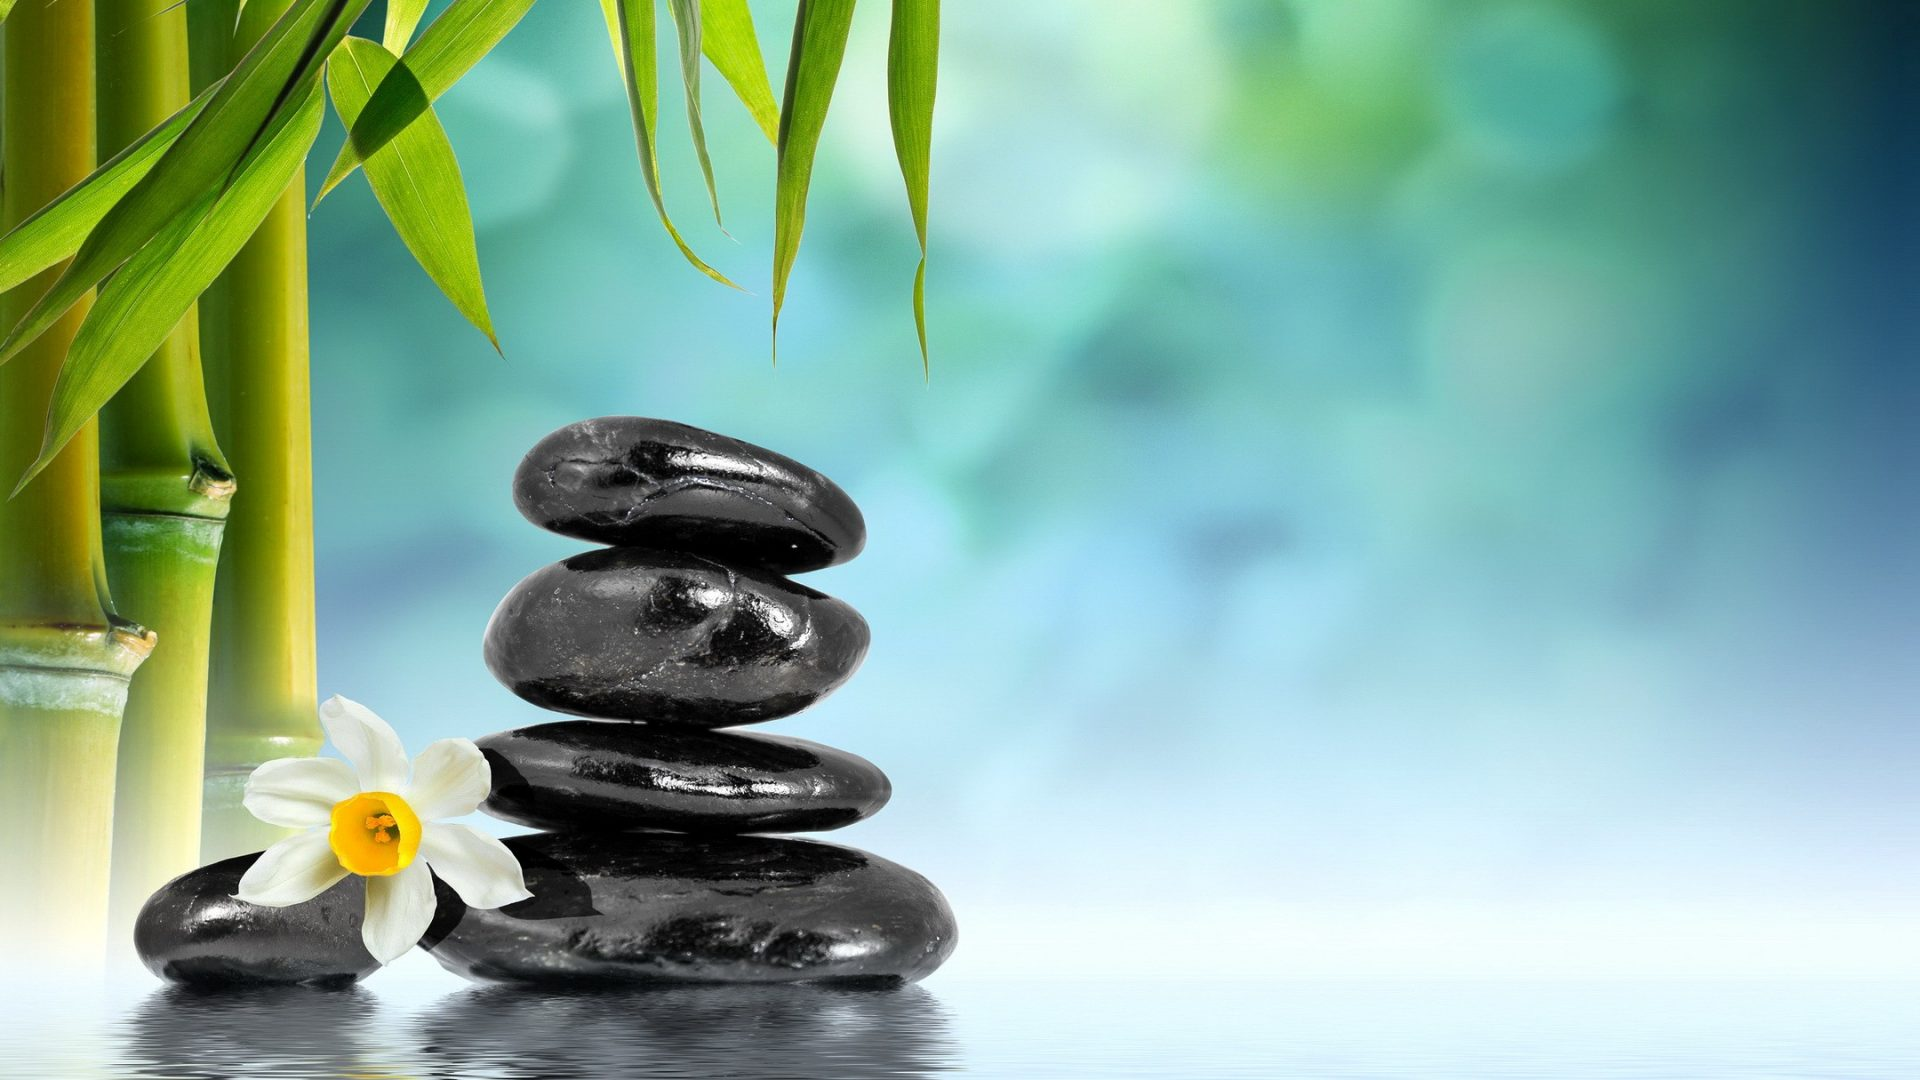 Relaxing Tag Wallpapers Page 4 Water Bamboo Stones Bamboo